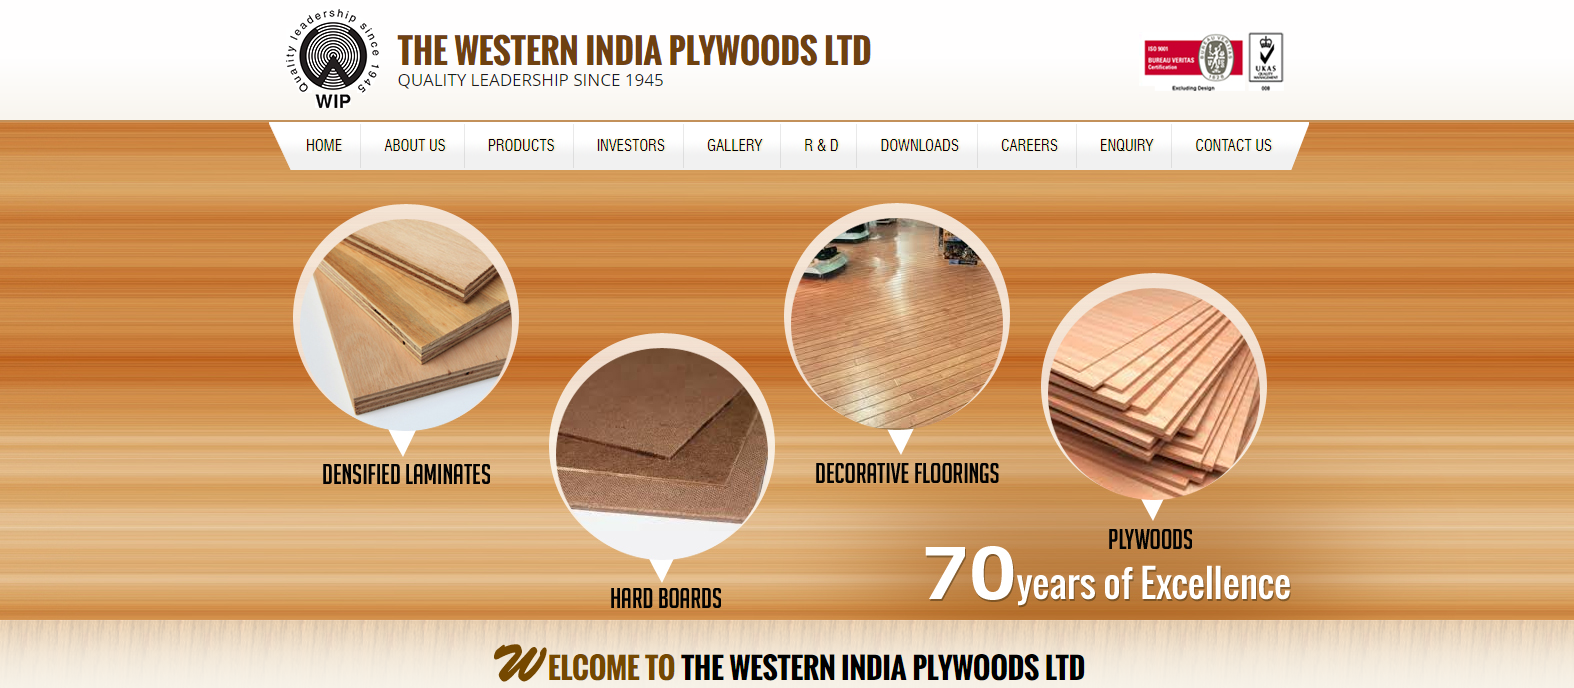 Western India Plywood Limited Best Plywood Brand Available in India